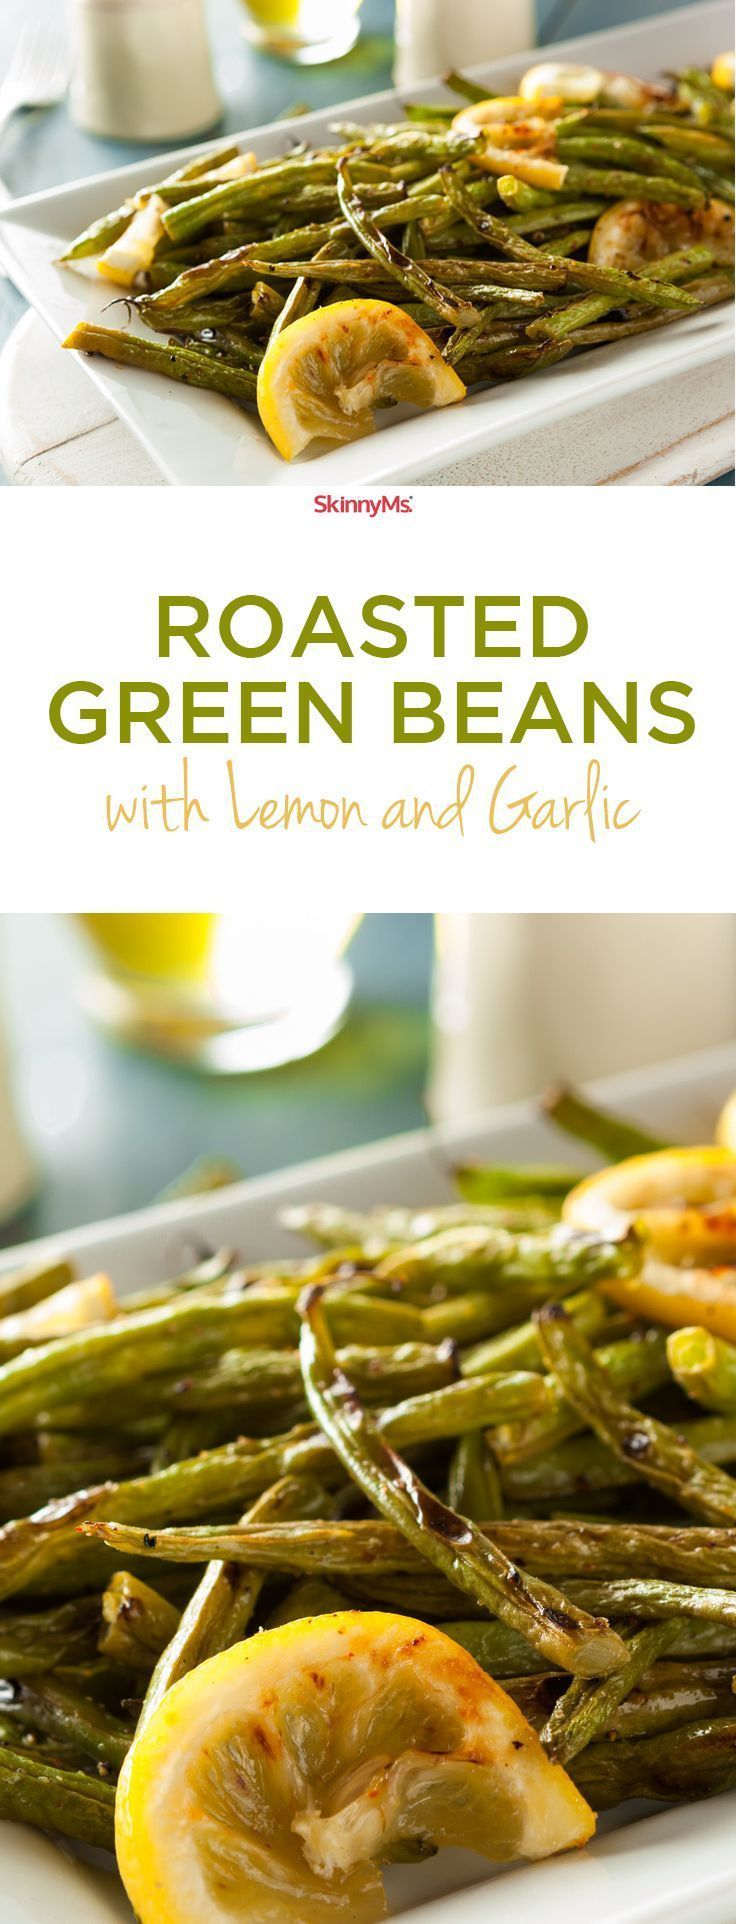 This Roasted Green Beans with Lemon & Garlic is such an easy and delicious side! #sidedishes #skinnyms